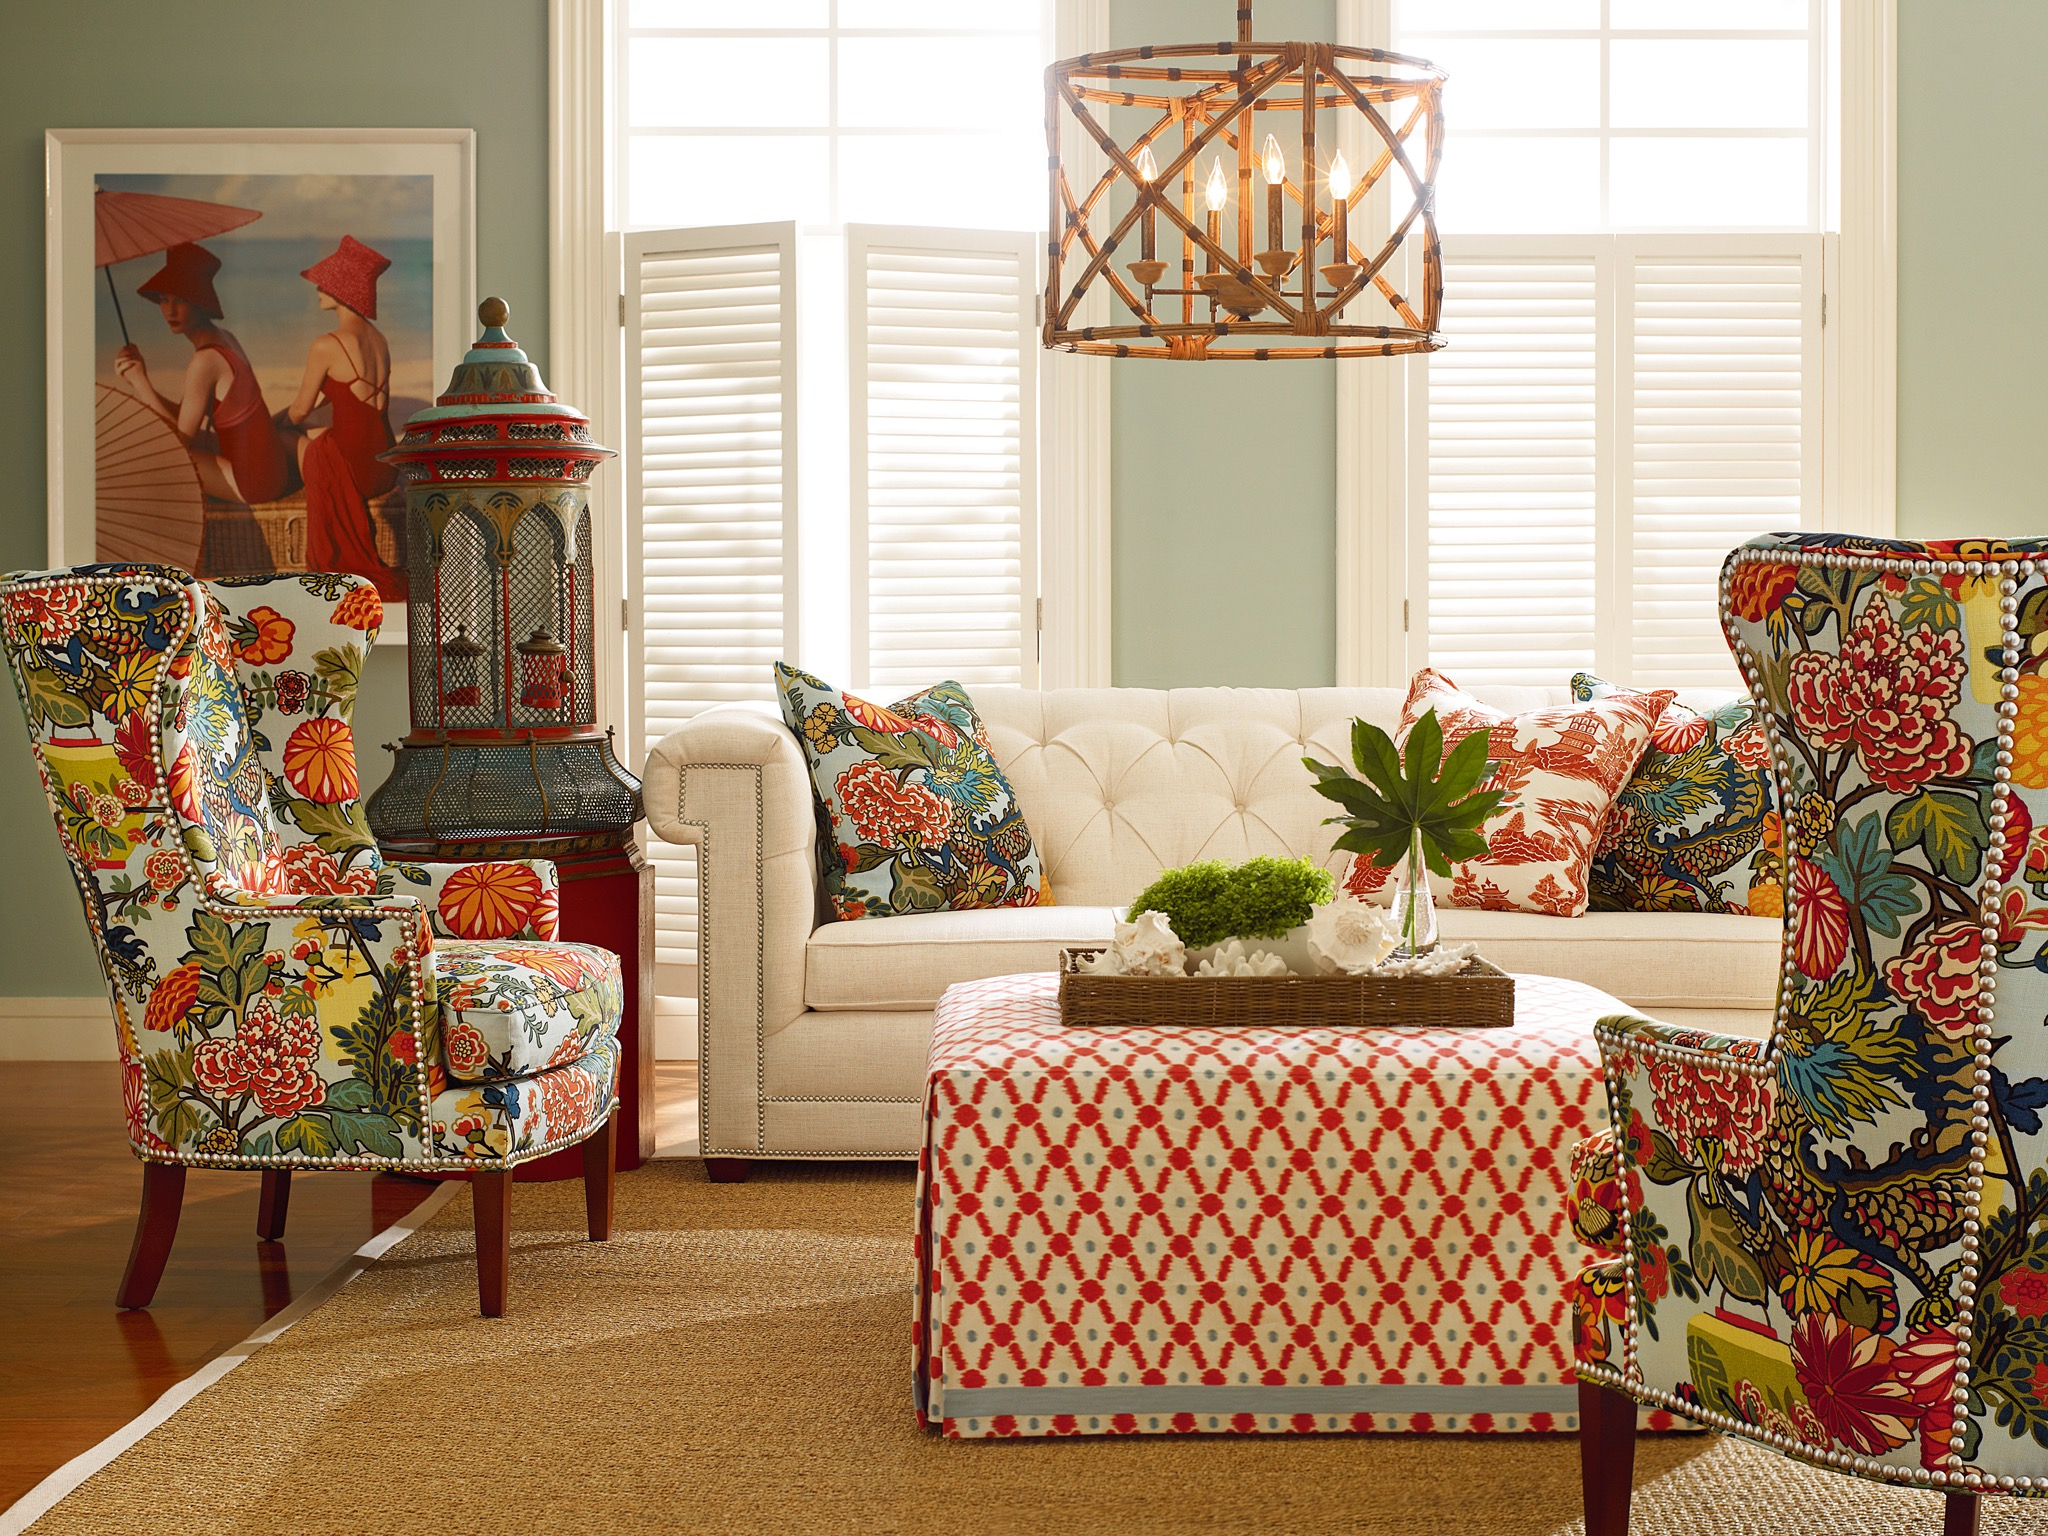 Oriental Living Room With Colorful Patterns And Tropical Accents (Image 15 of 20)